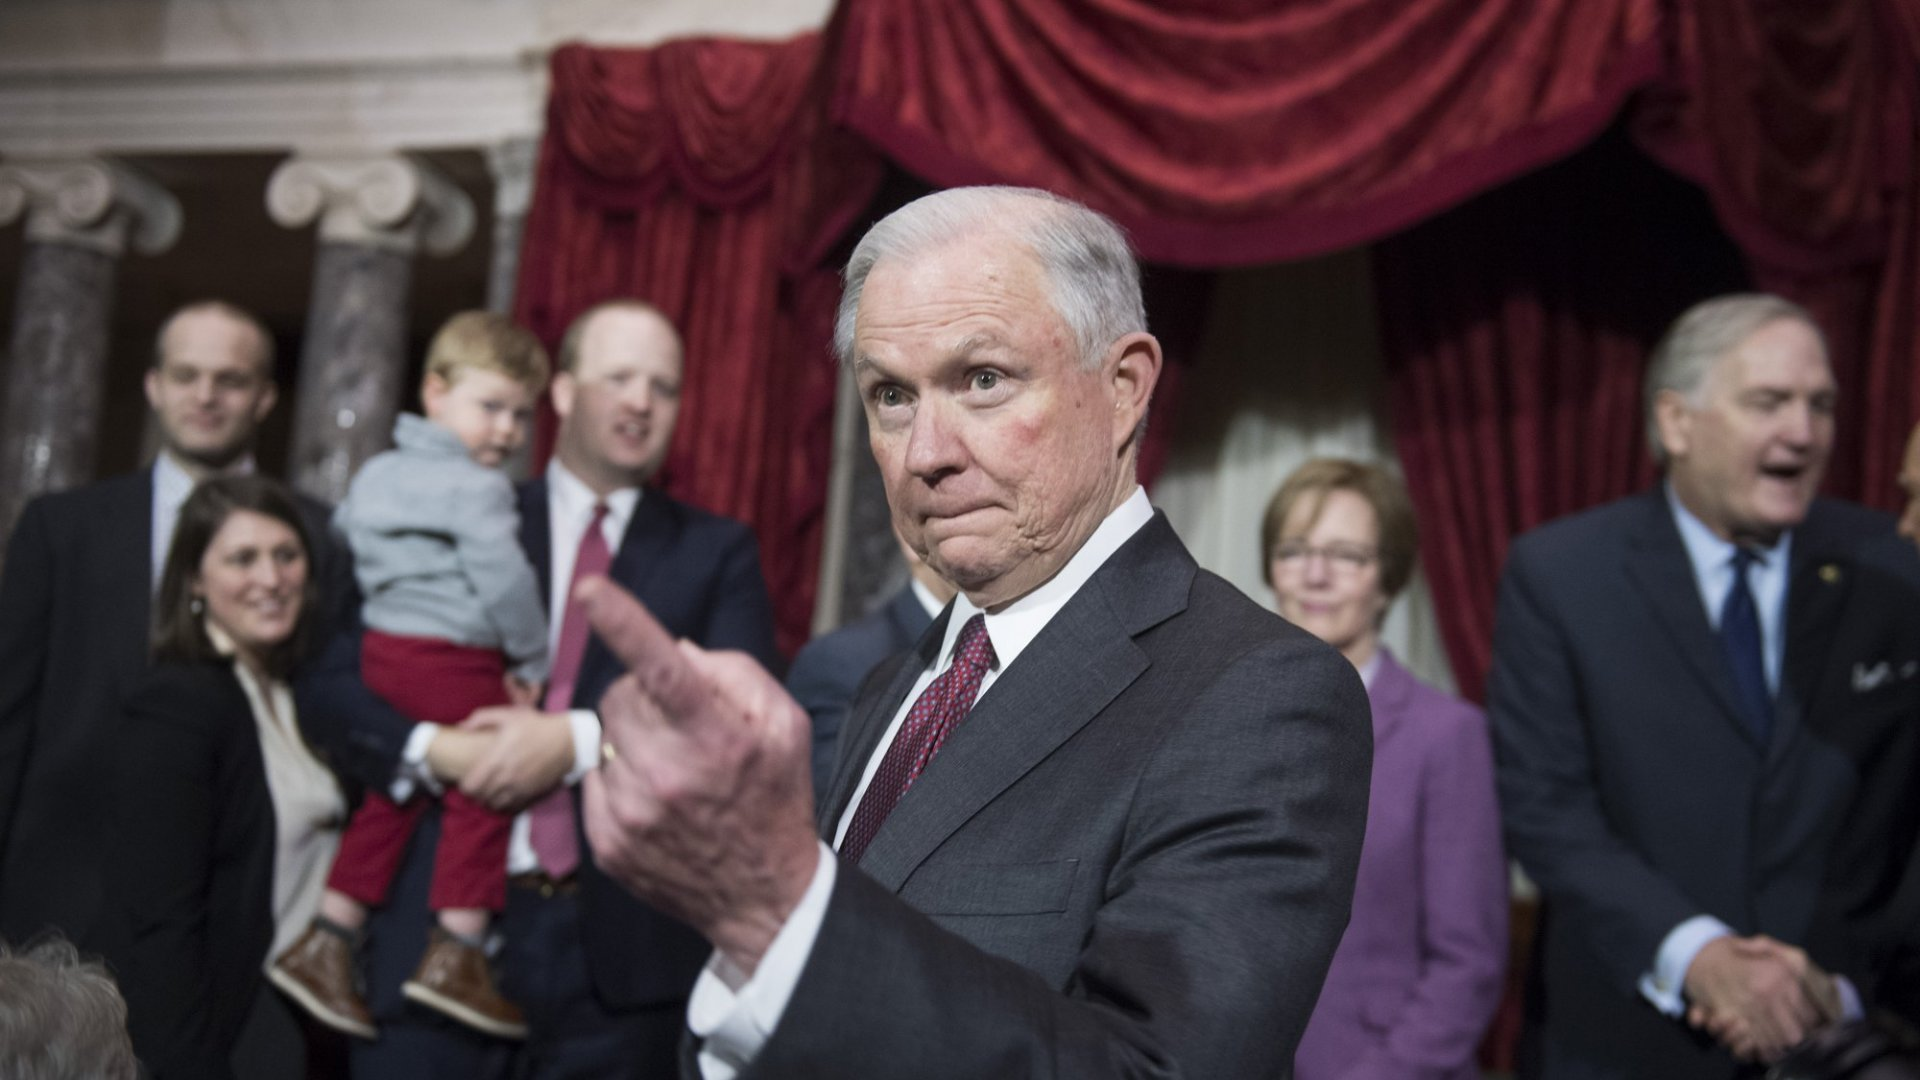 U.S. Attorney General Jeff Sessions, a staunch opponent of marijuana legalization, says he's been tasked by President Trump to reduce crime. Sessions says a big focus of crime reduction will be on stemming drug sales and abuse.